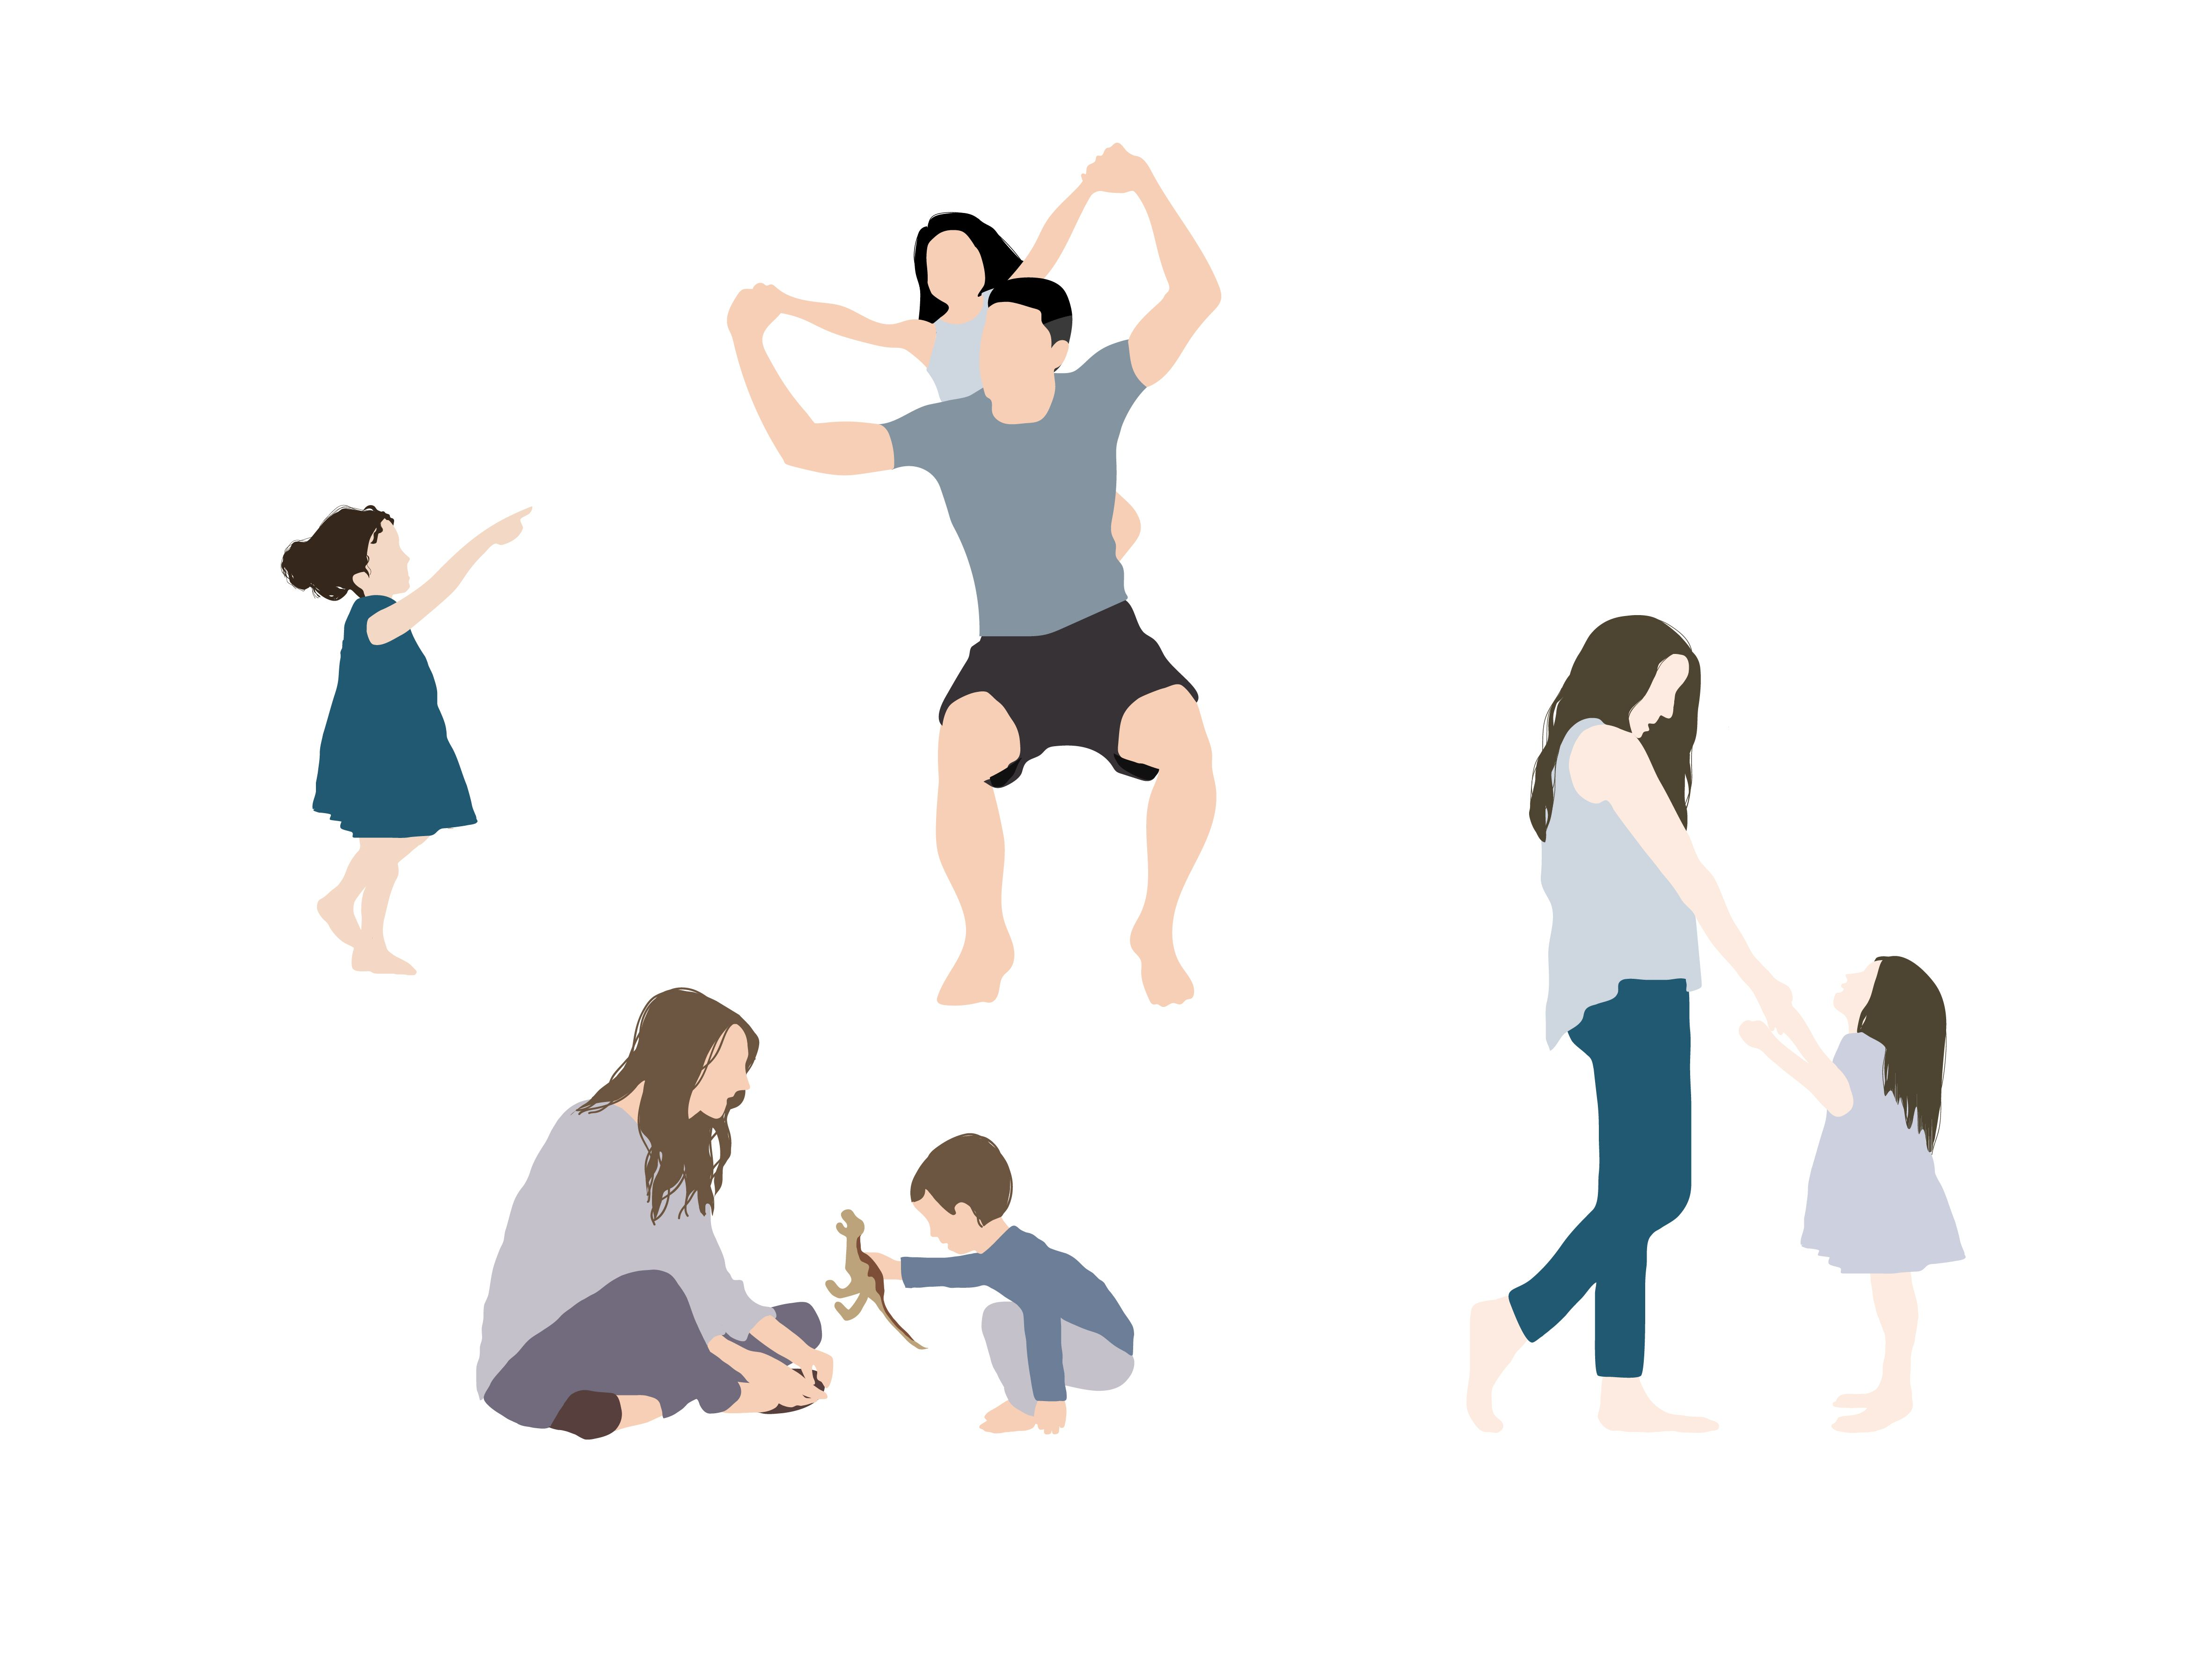 Flat Vector People Children Kids Family Vector Illustration People People Illustration Silhouette Architecture